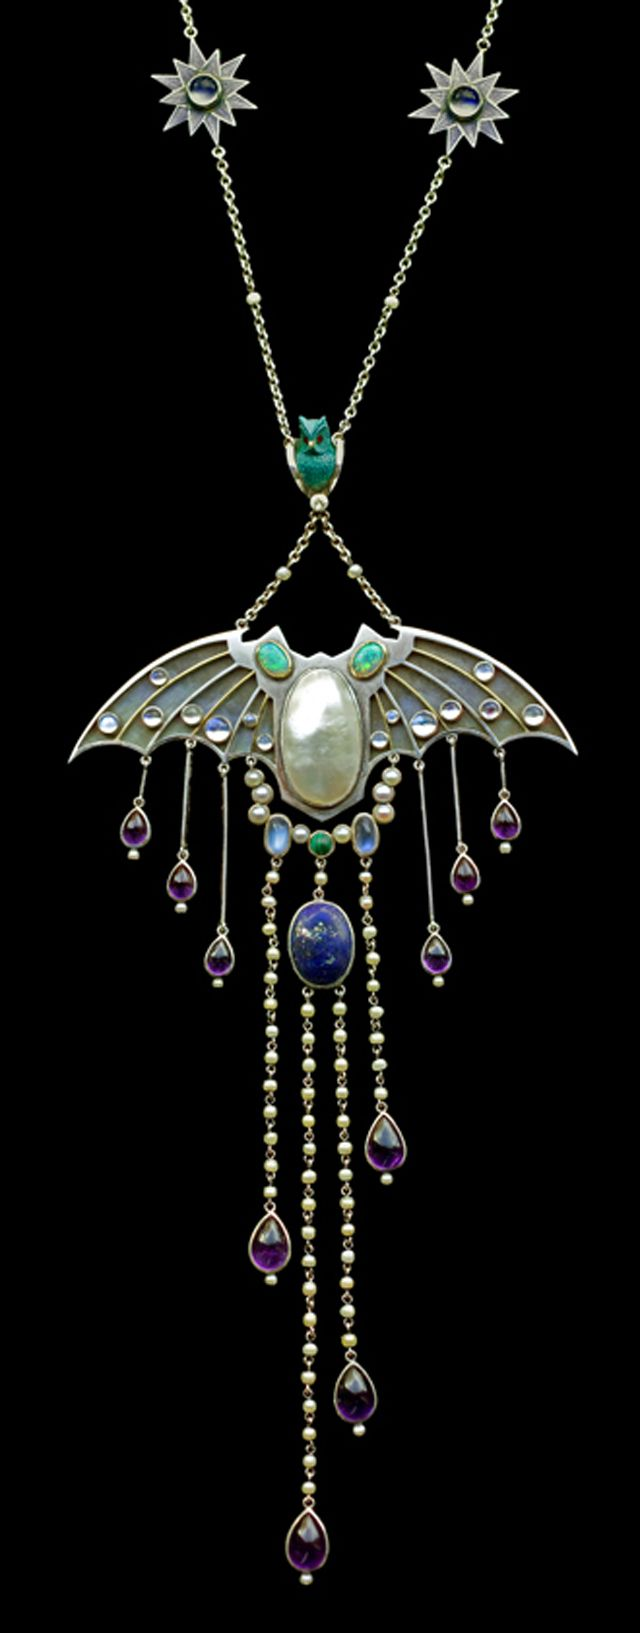 Silver and semi precious stones, Jugendstil style circa 1910. Look at the wee lil' bat!